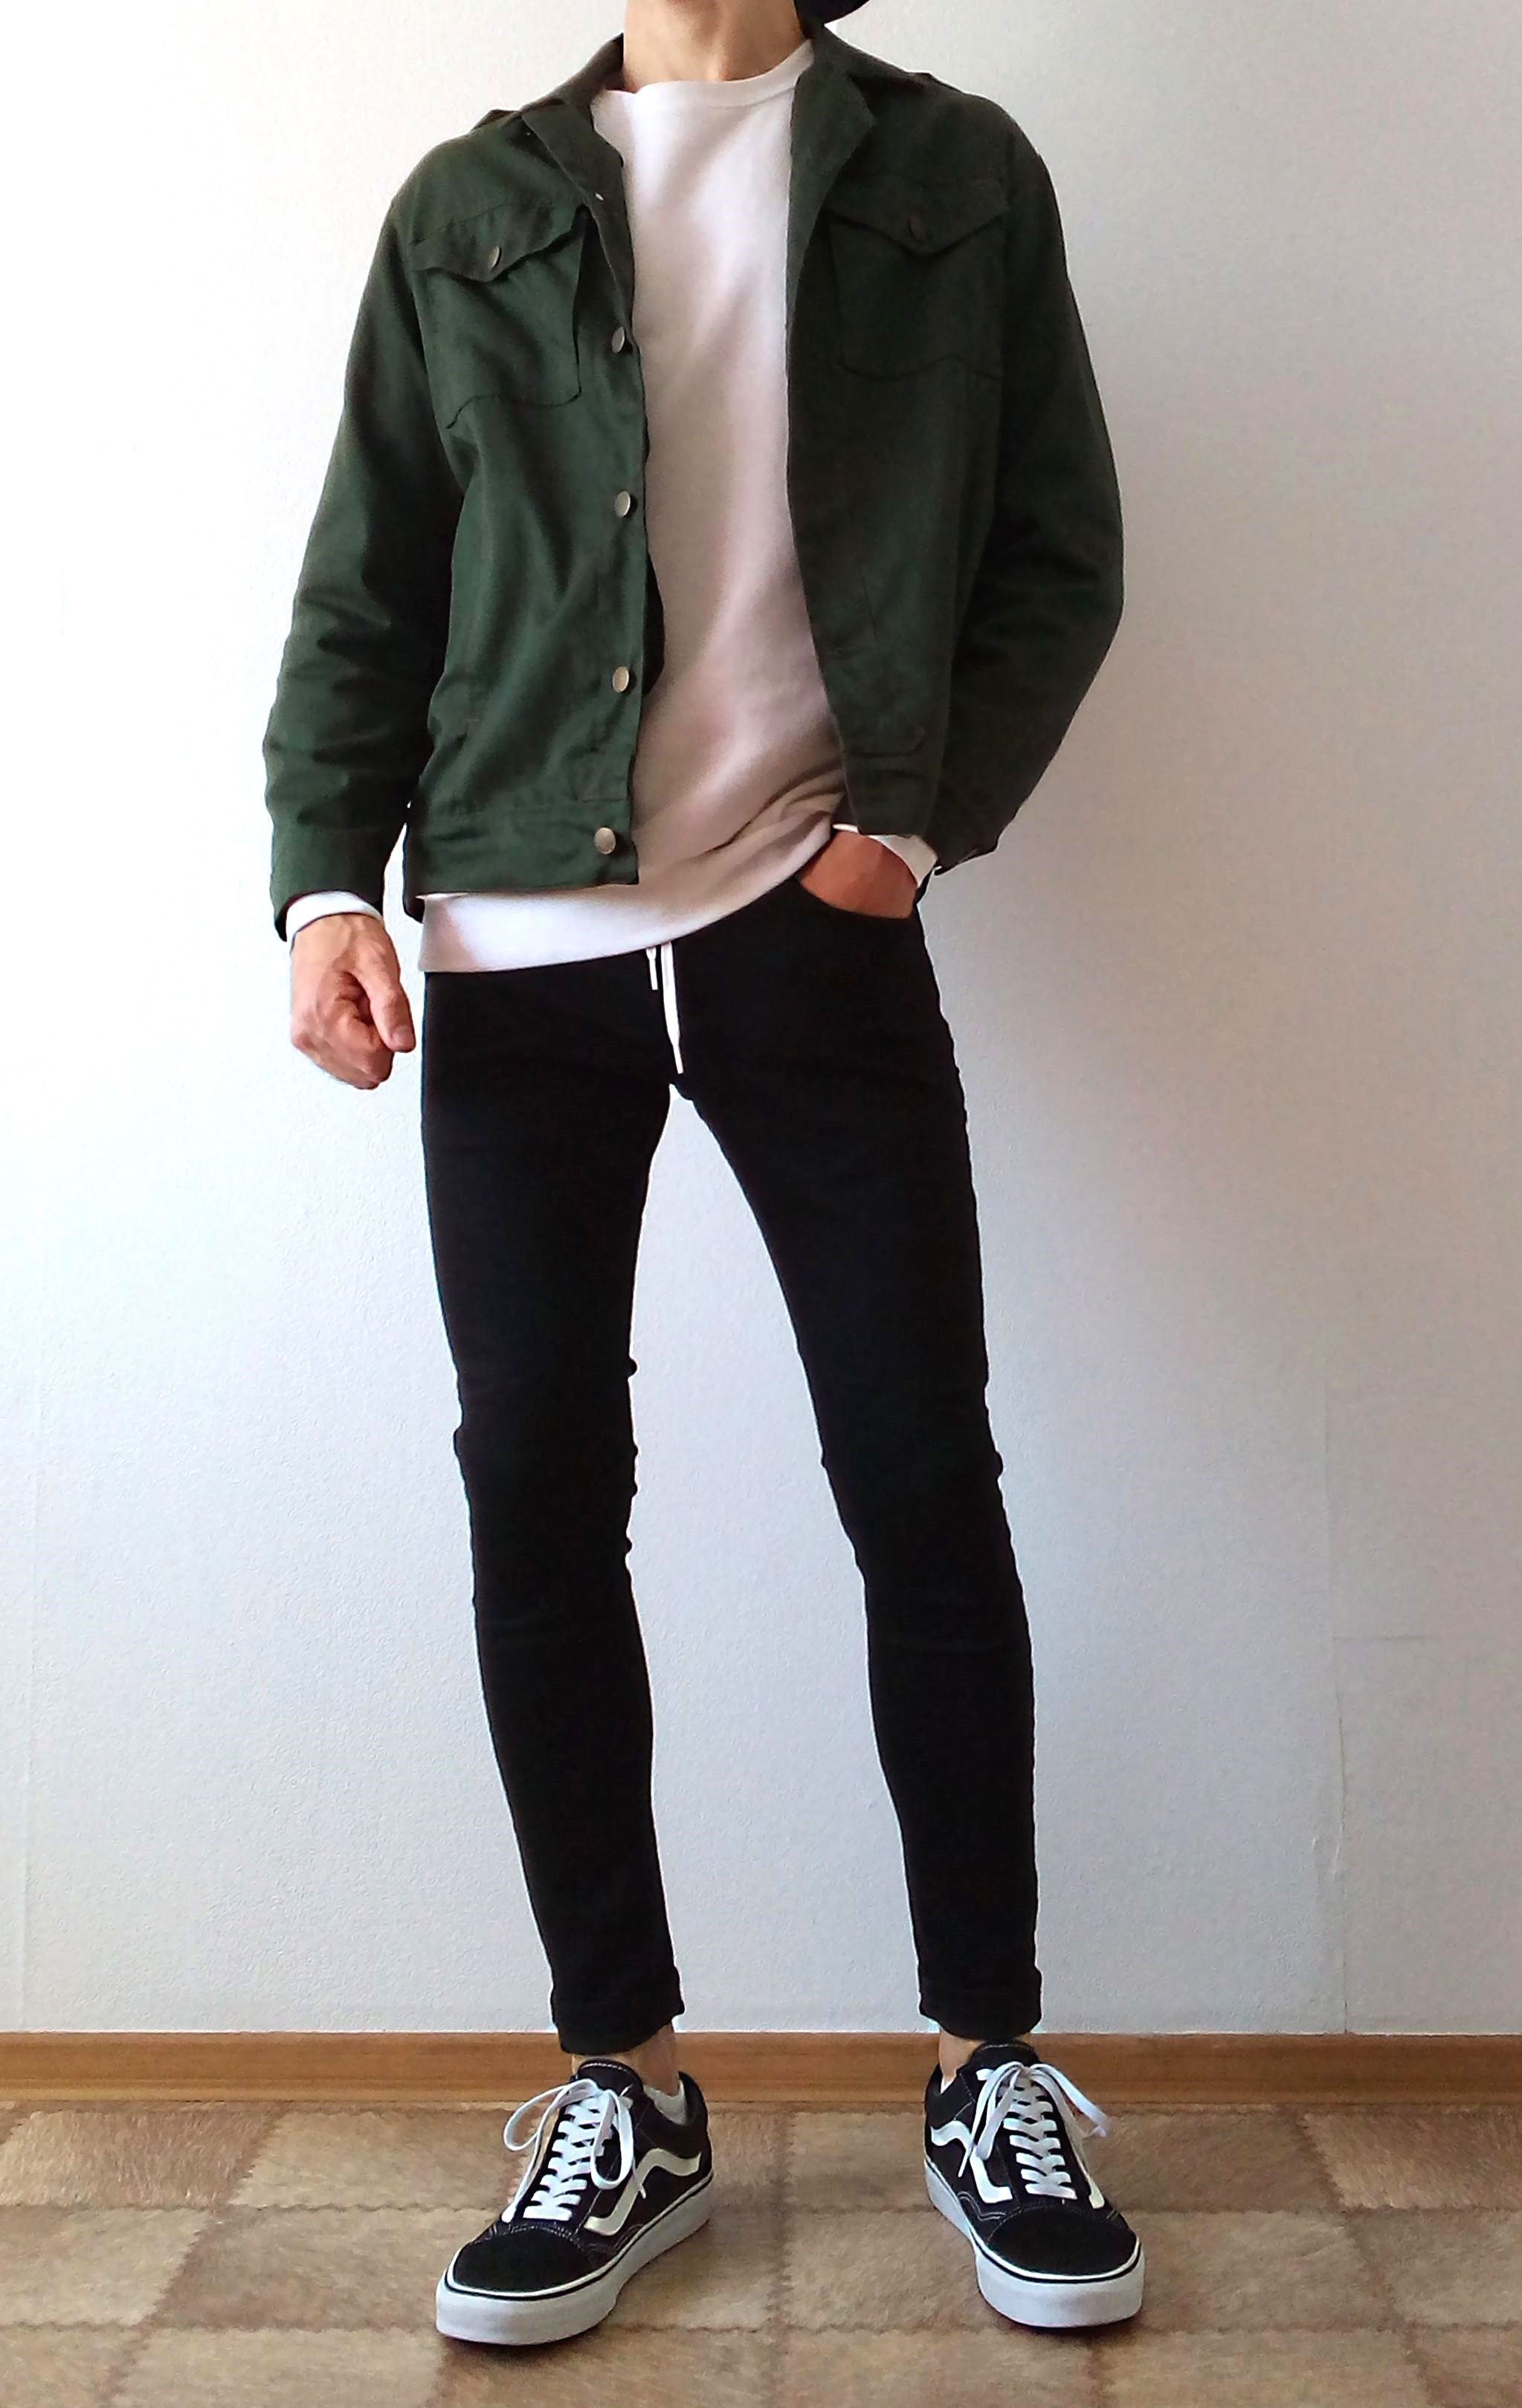 Vans Old Skool Black Skinny Jeans Boys Guys Outfit Vans Lo Vans Old Skool Black Skinny Jeans Bo In 2020 Guys Fashion Casual Mens Casual Outfits Skinny Jeans Boys